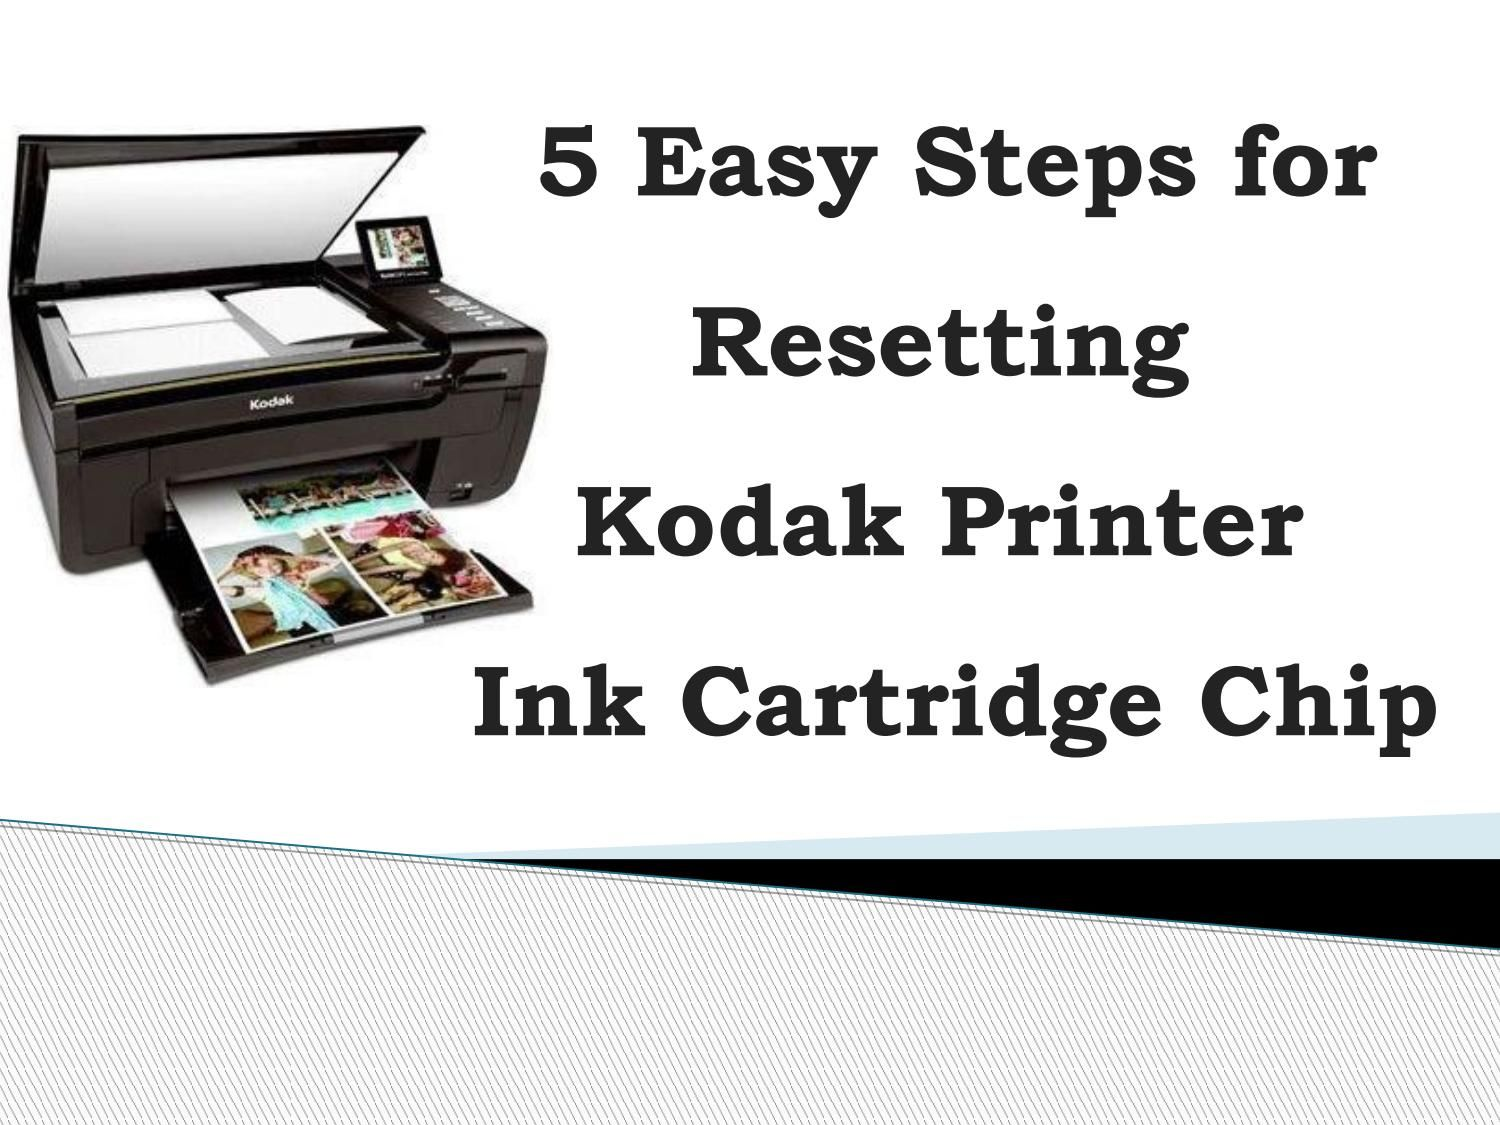 5 Easy Steps For Resetting Kodak Printer Ink Cartridge Chip